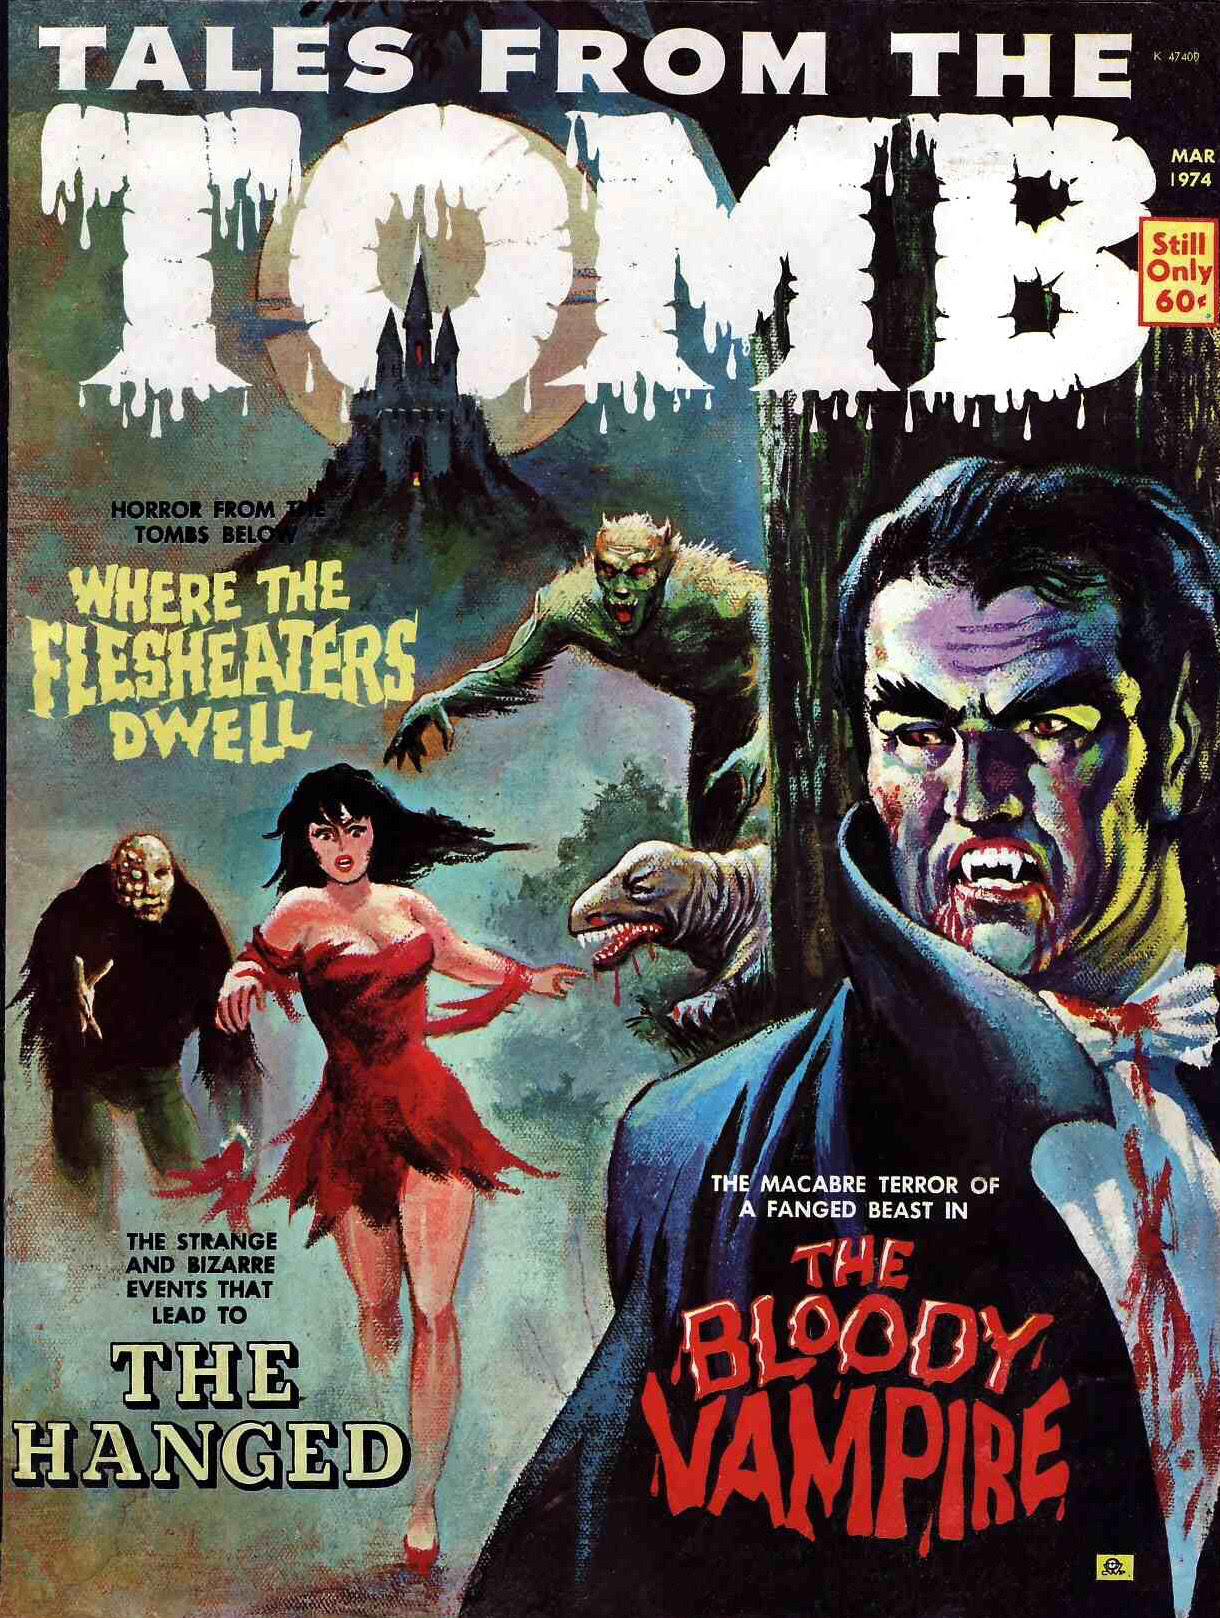 Tales from the Tomb - Vol. 6 #2 (Eerie Publications, 1974)